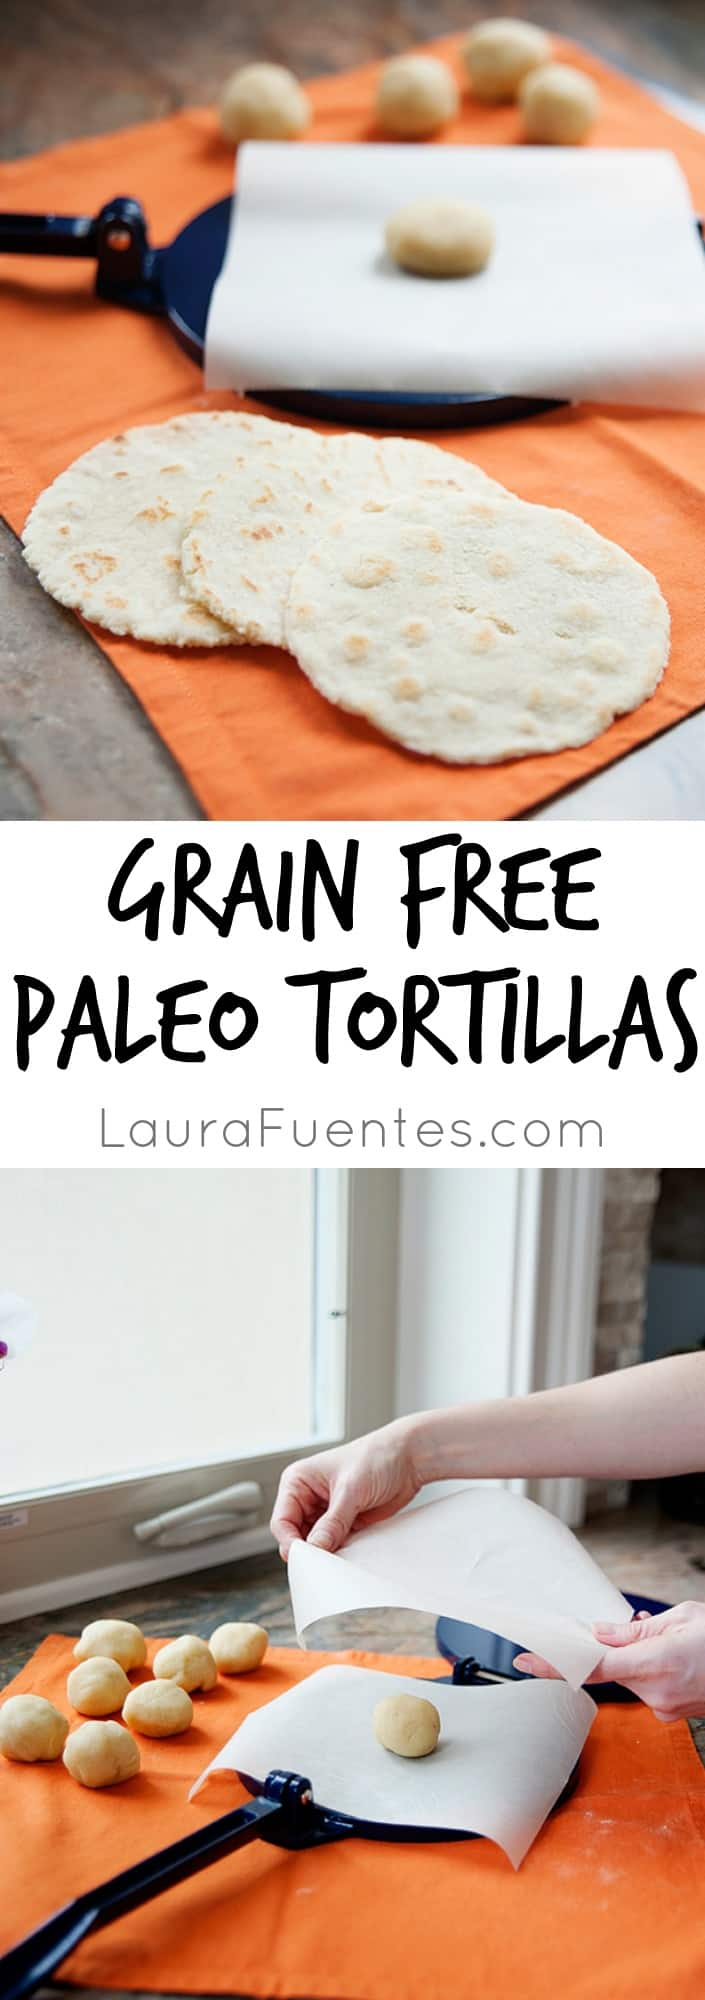 Grain Free Paleo Tortillas: the perfect addition to taco night.